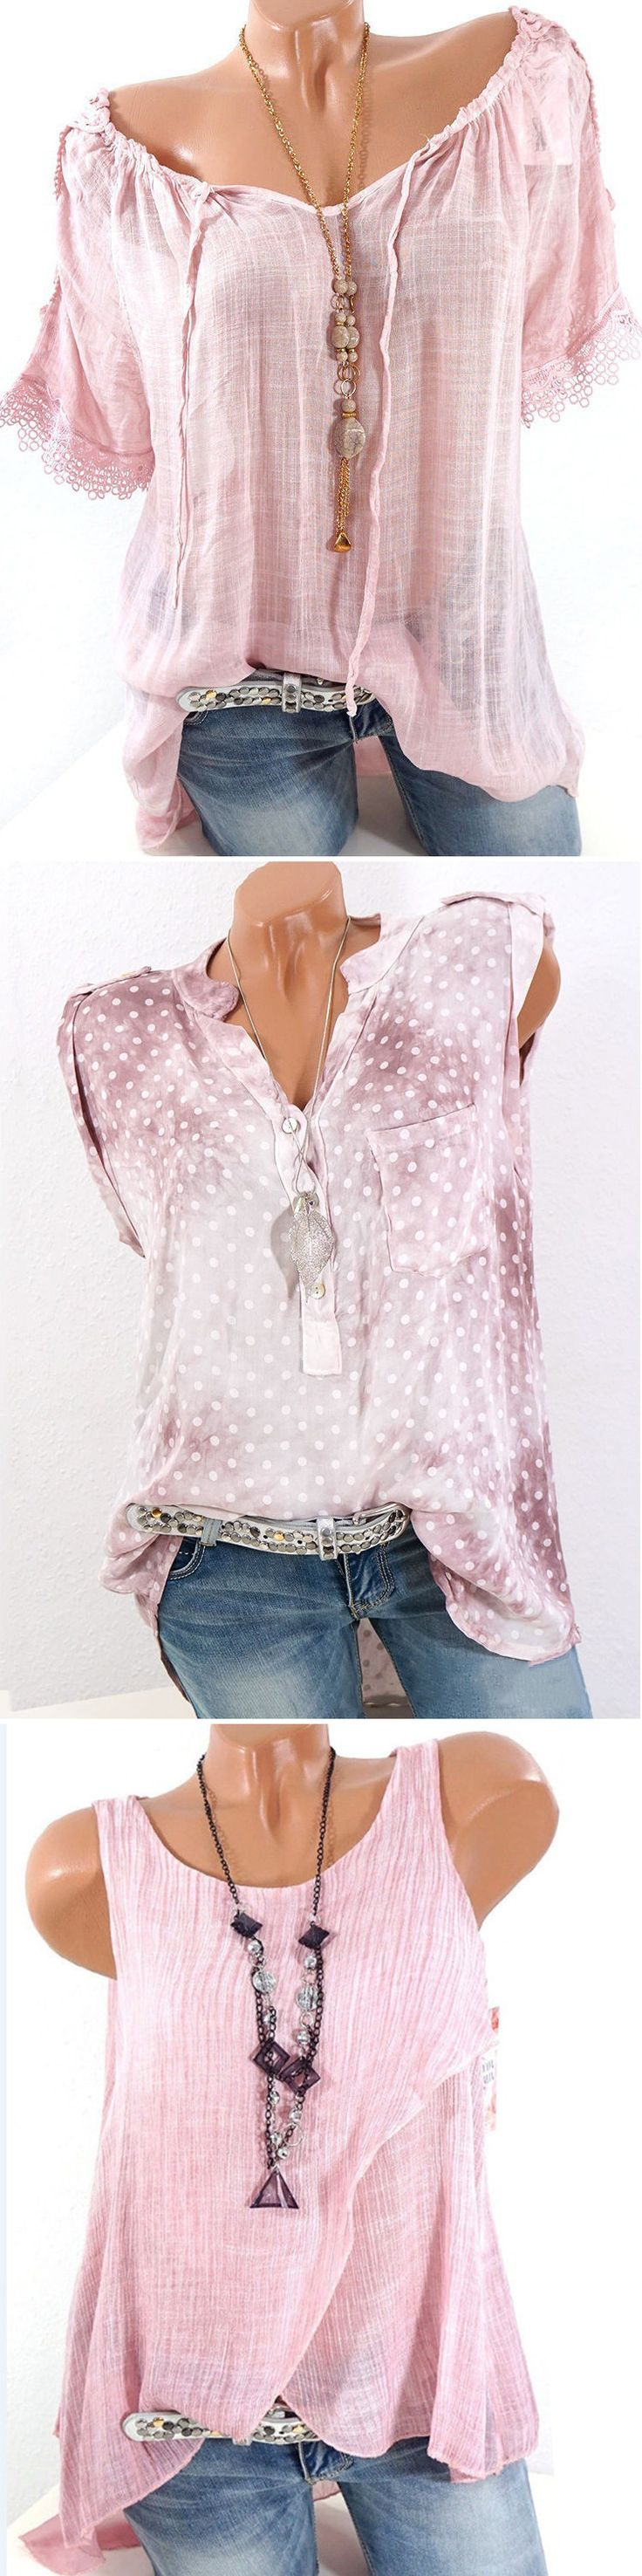 UP TO 55% OFF! Find Plus Size Fashion and Vintage Tops,Shirts,Blouse,and T shirt... 17